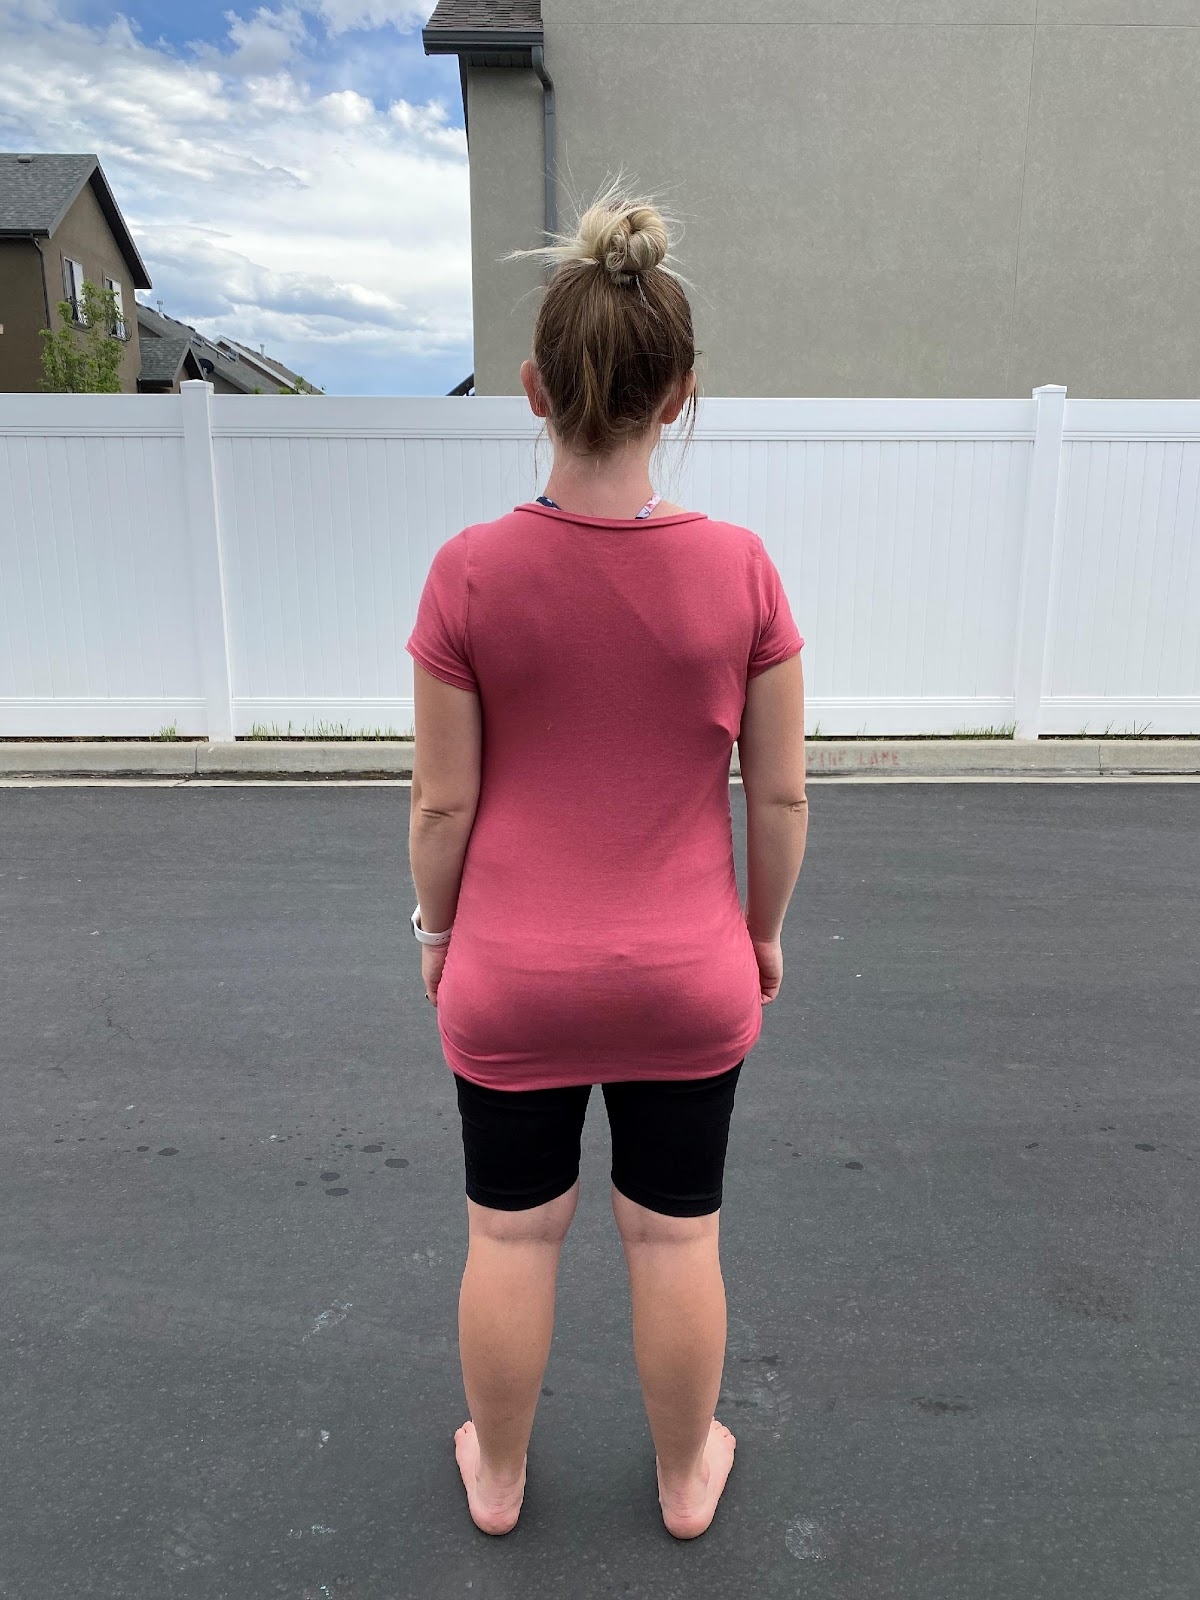 A person wearing a pink dress  Description automatically generated with low confidence